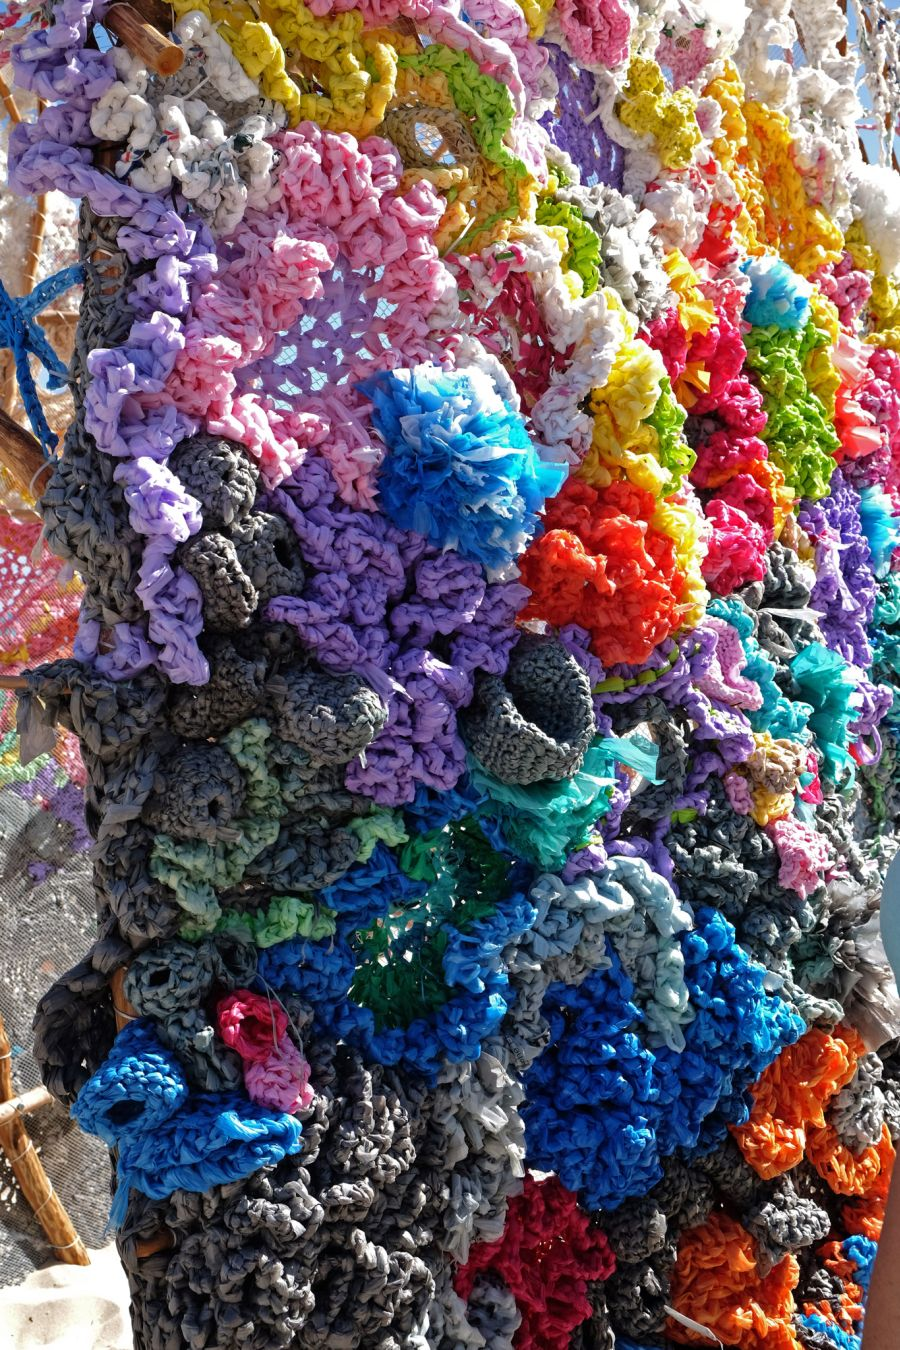 Rescheduling permanence by Helen Seiver. Wood, crocheted plastic bags - close up.